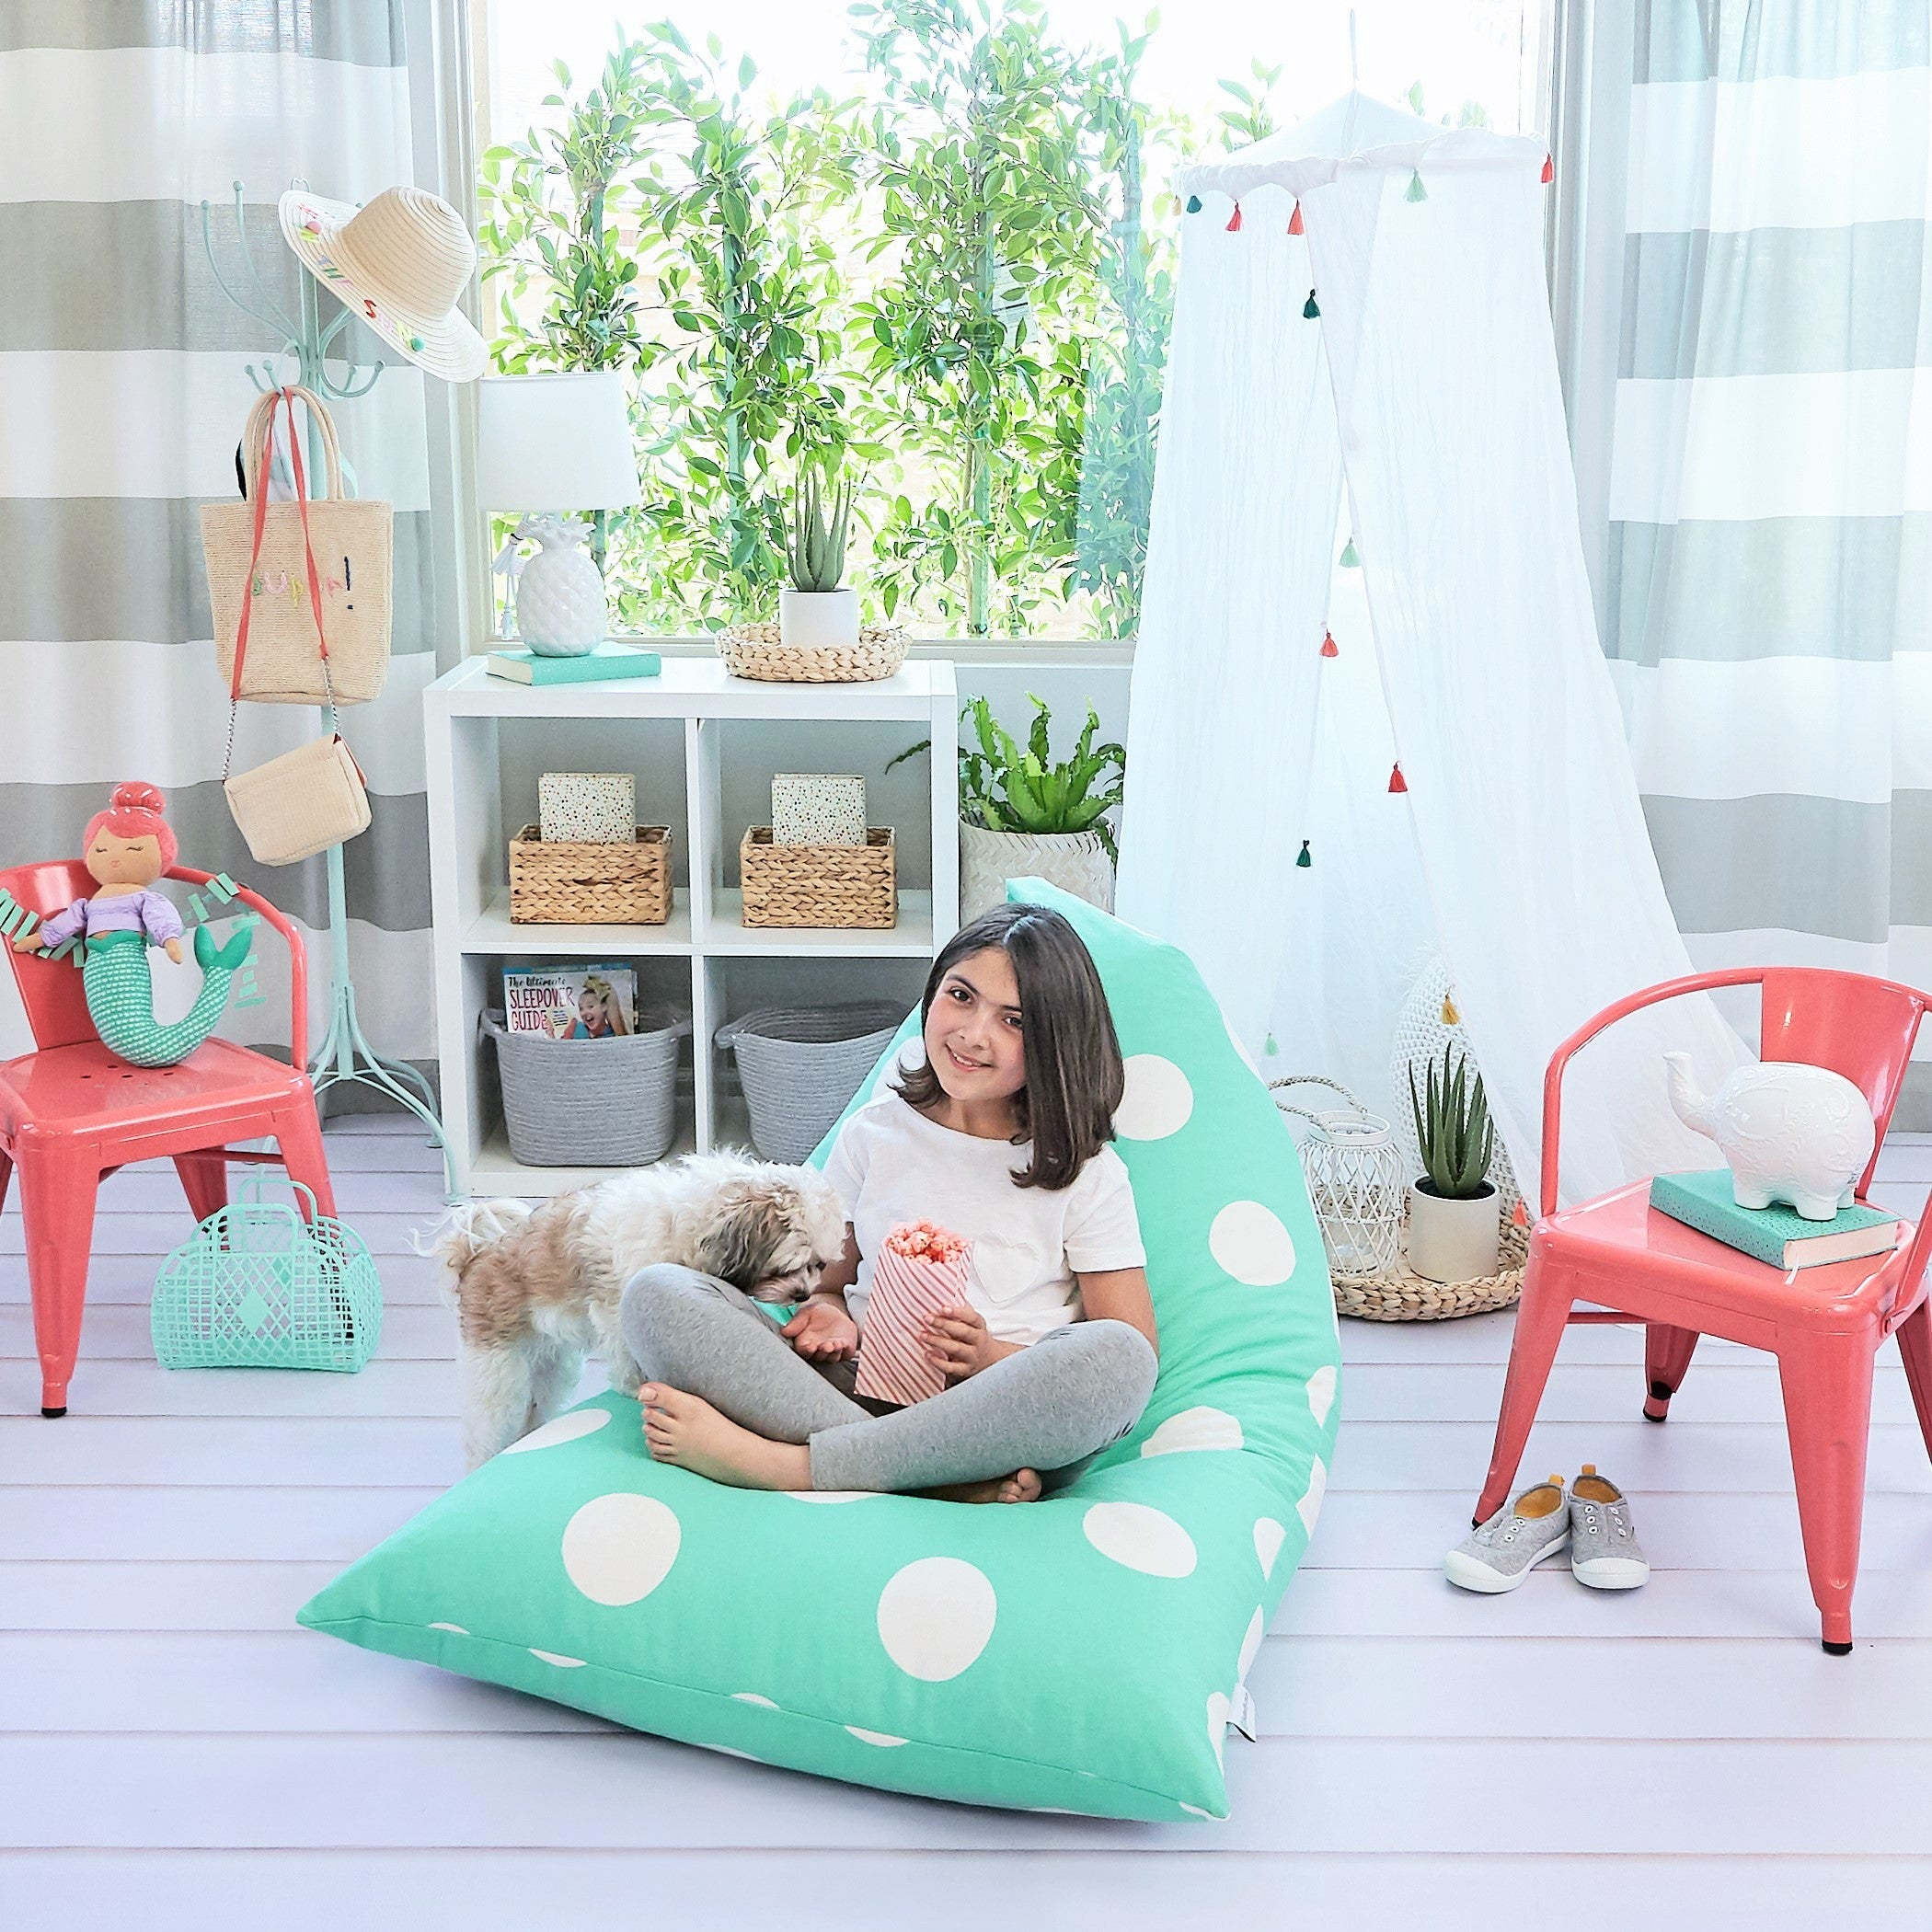 Teal Polka Dot Bean Bag